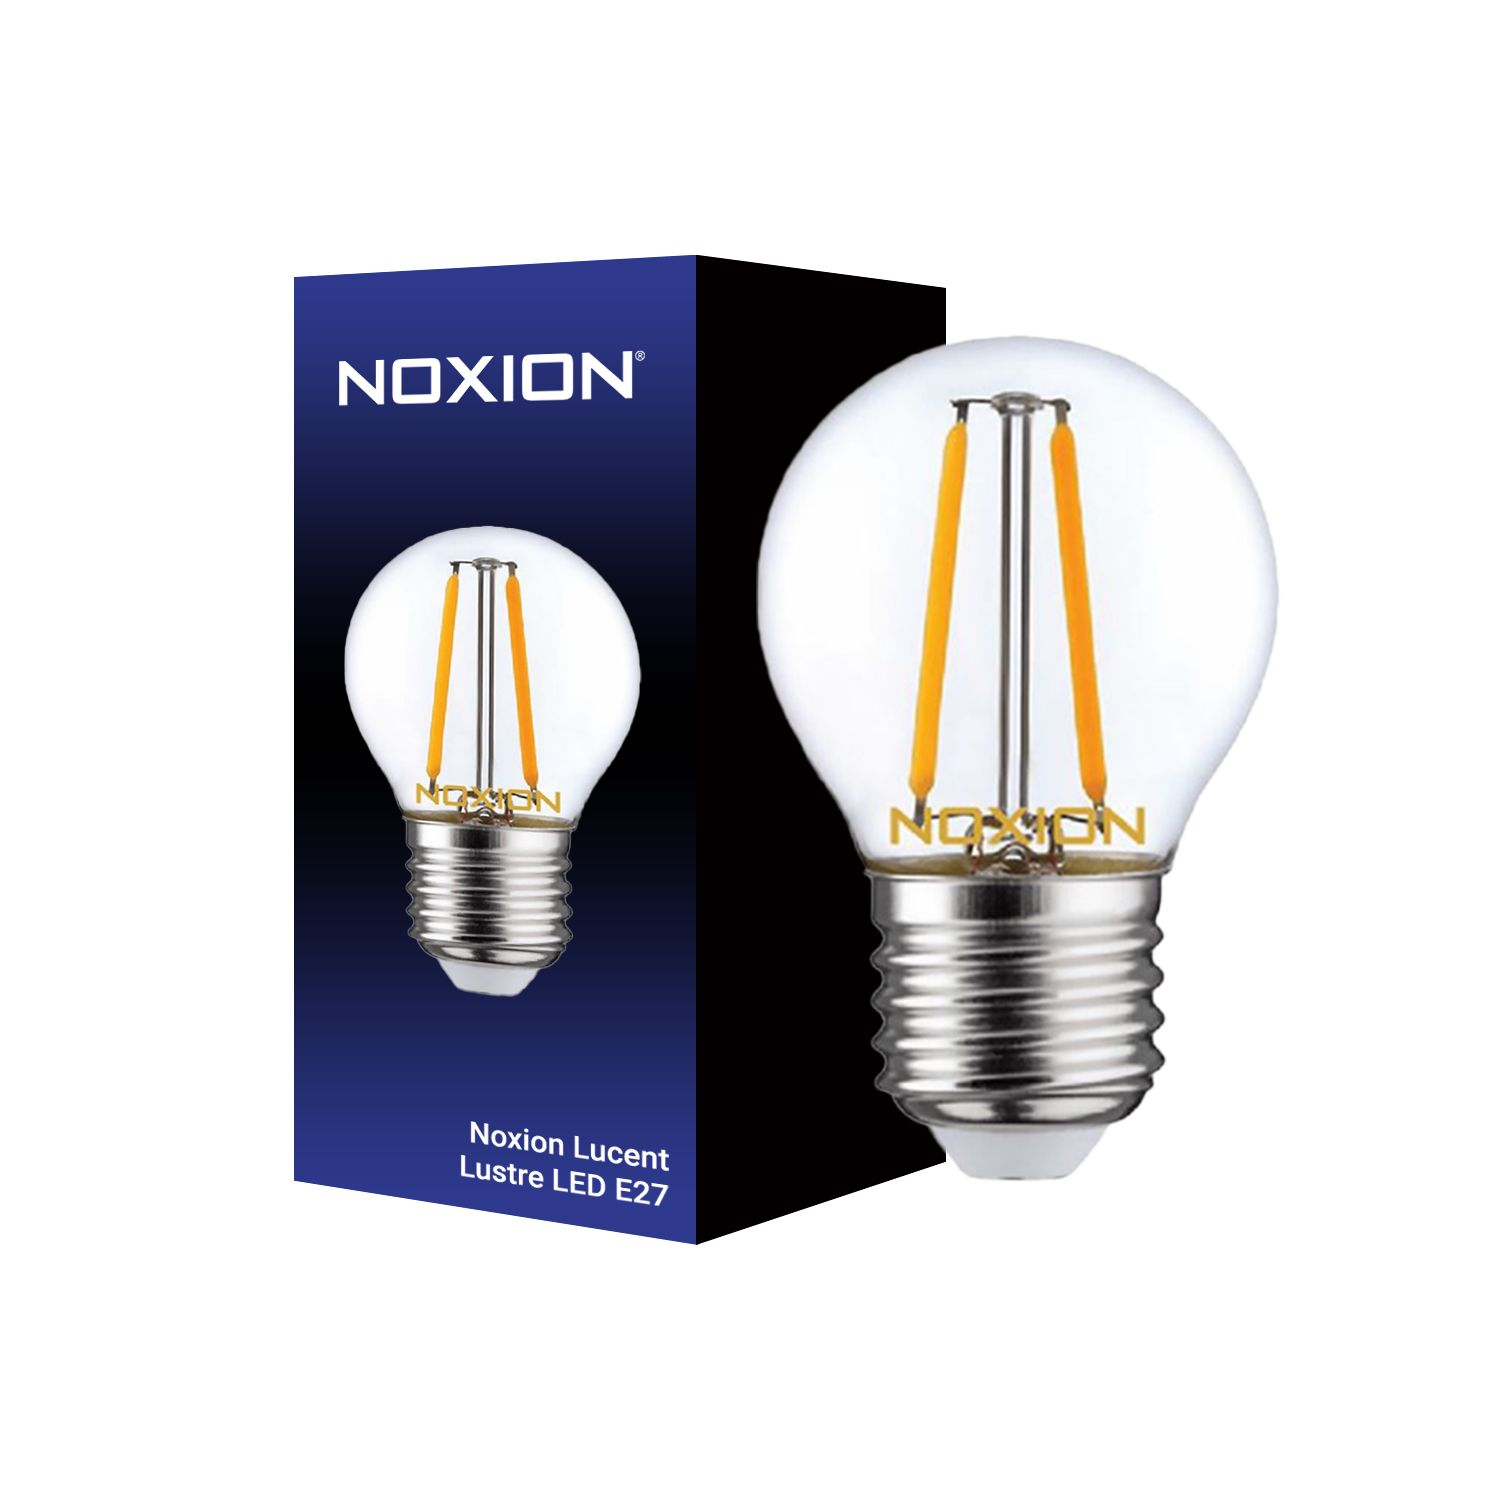 Noxion Lucent LED Lustre E27 2.5W 827 Filament | Extra Warm White - Dimmable - Replaces 25W